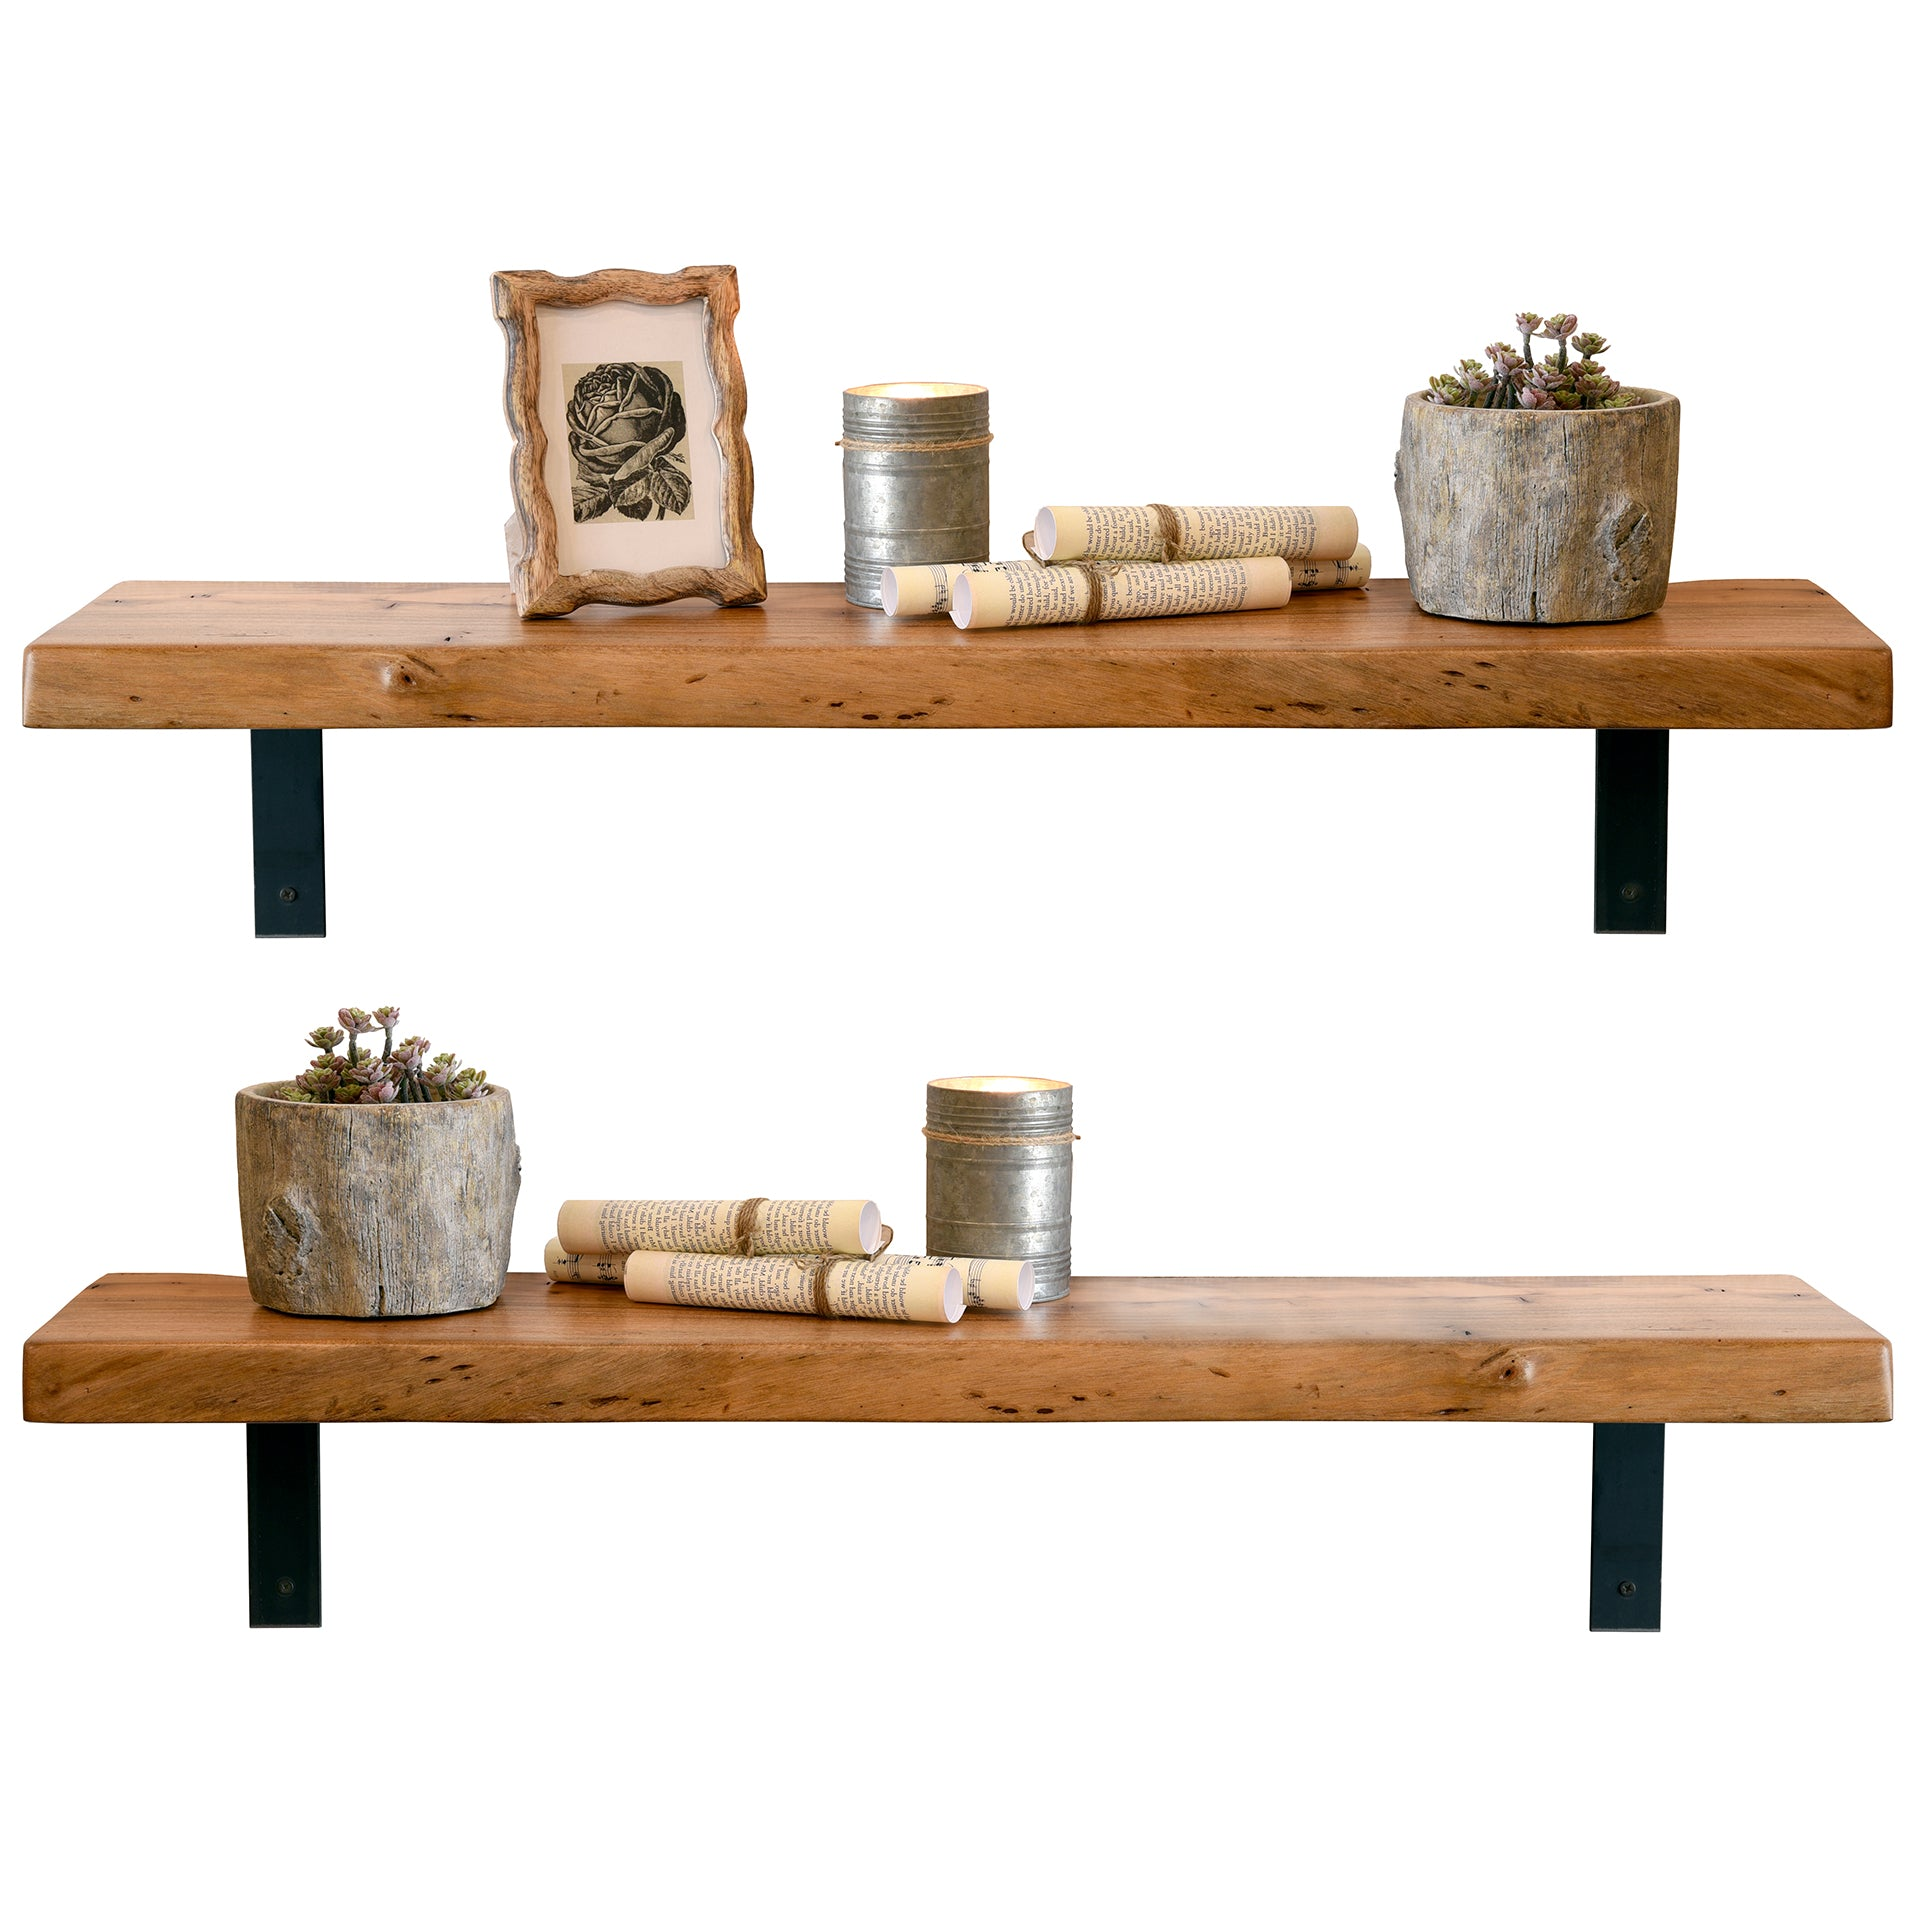 Light Reclaimed Wood Live Edge Slab Shelves - Set of 2